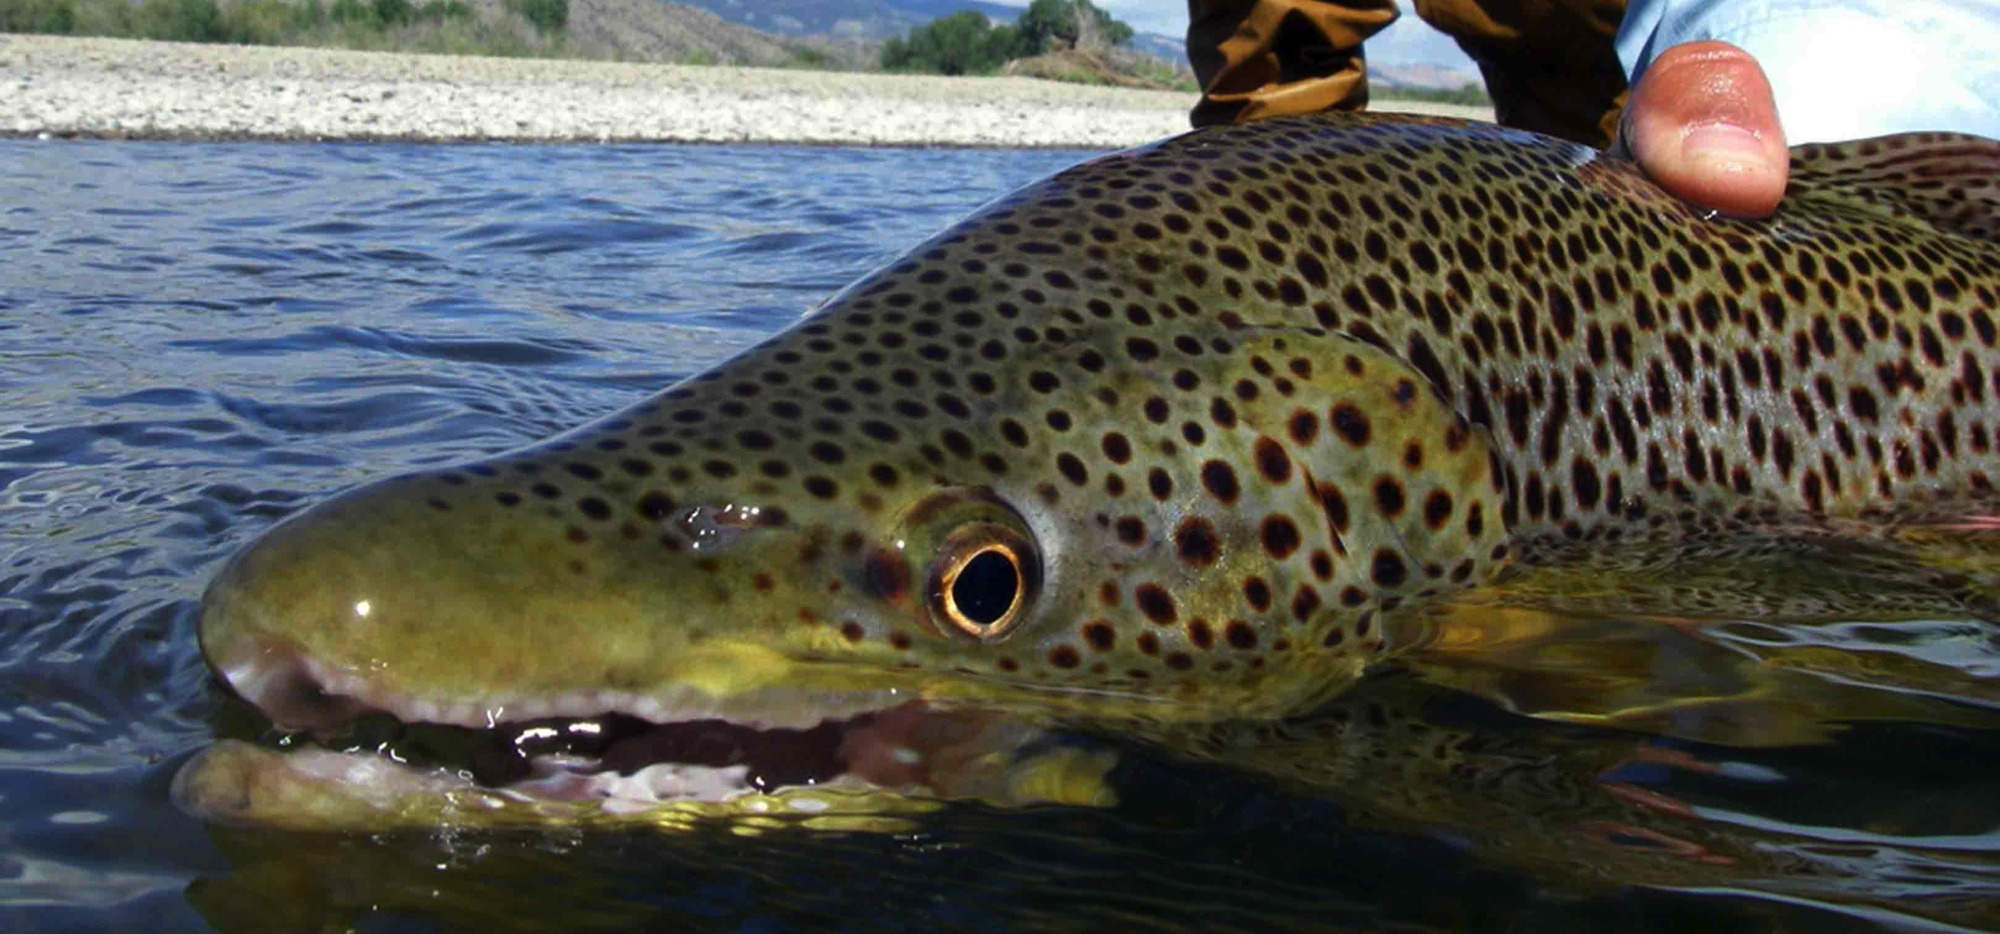 Fly fishing trips for beginners experts 406 763 4465 for Yellowstone fly fishing